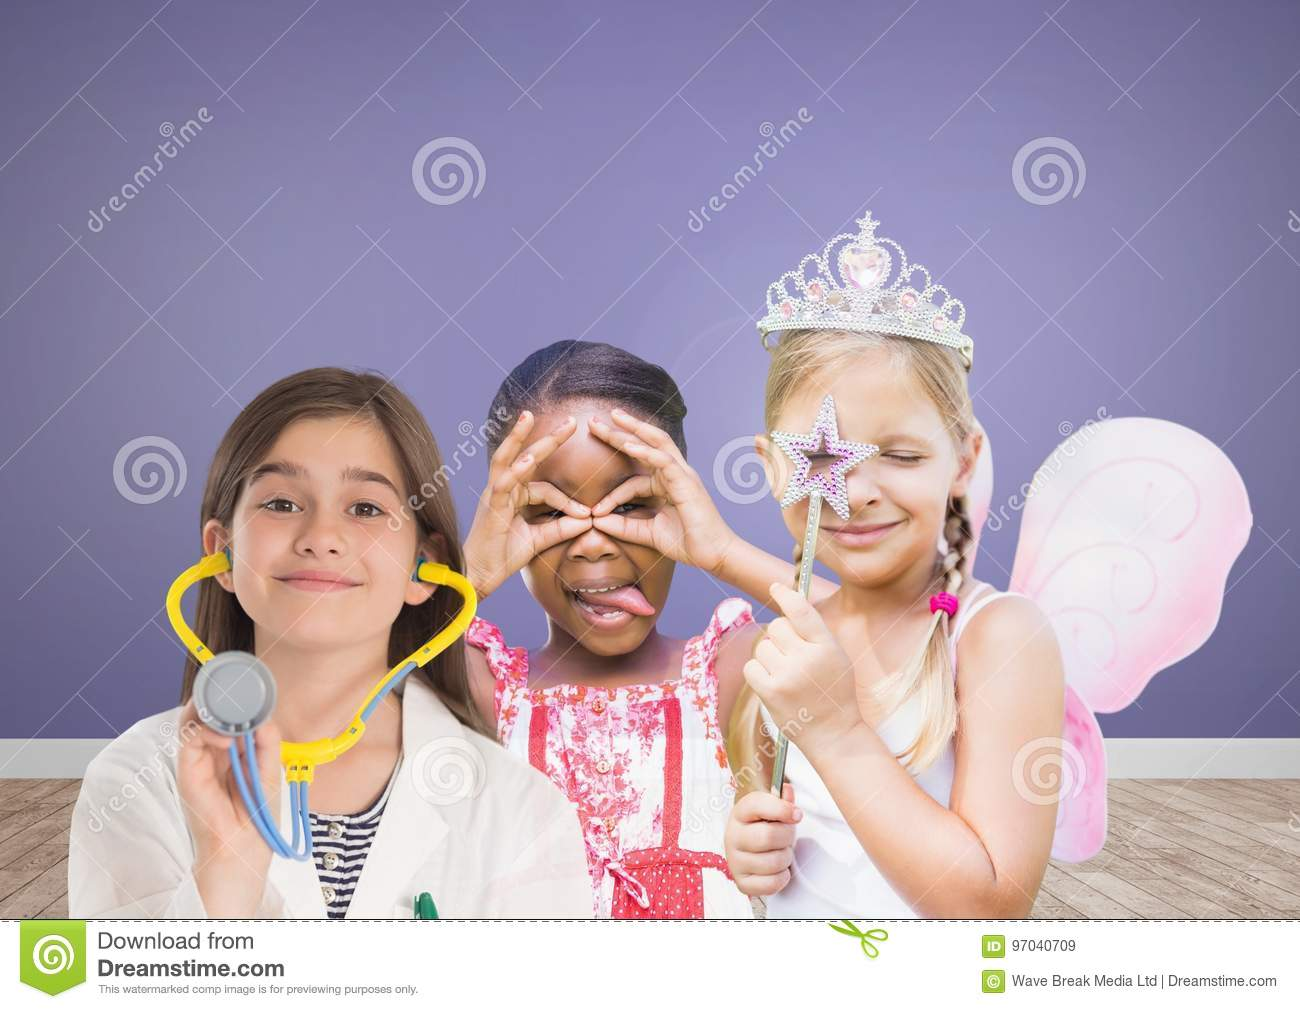 3 girls with blank room purple background